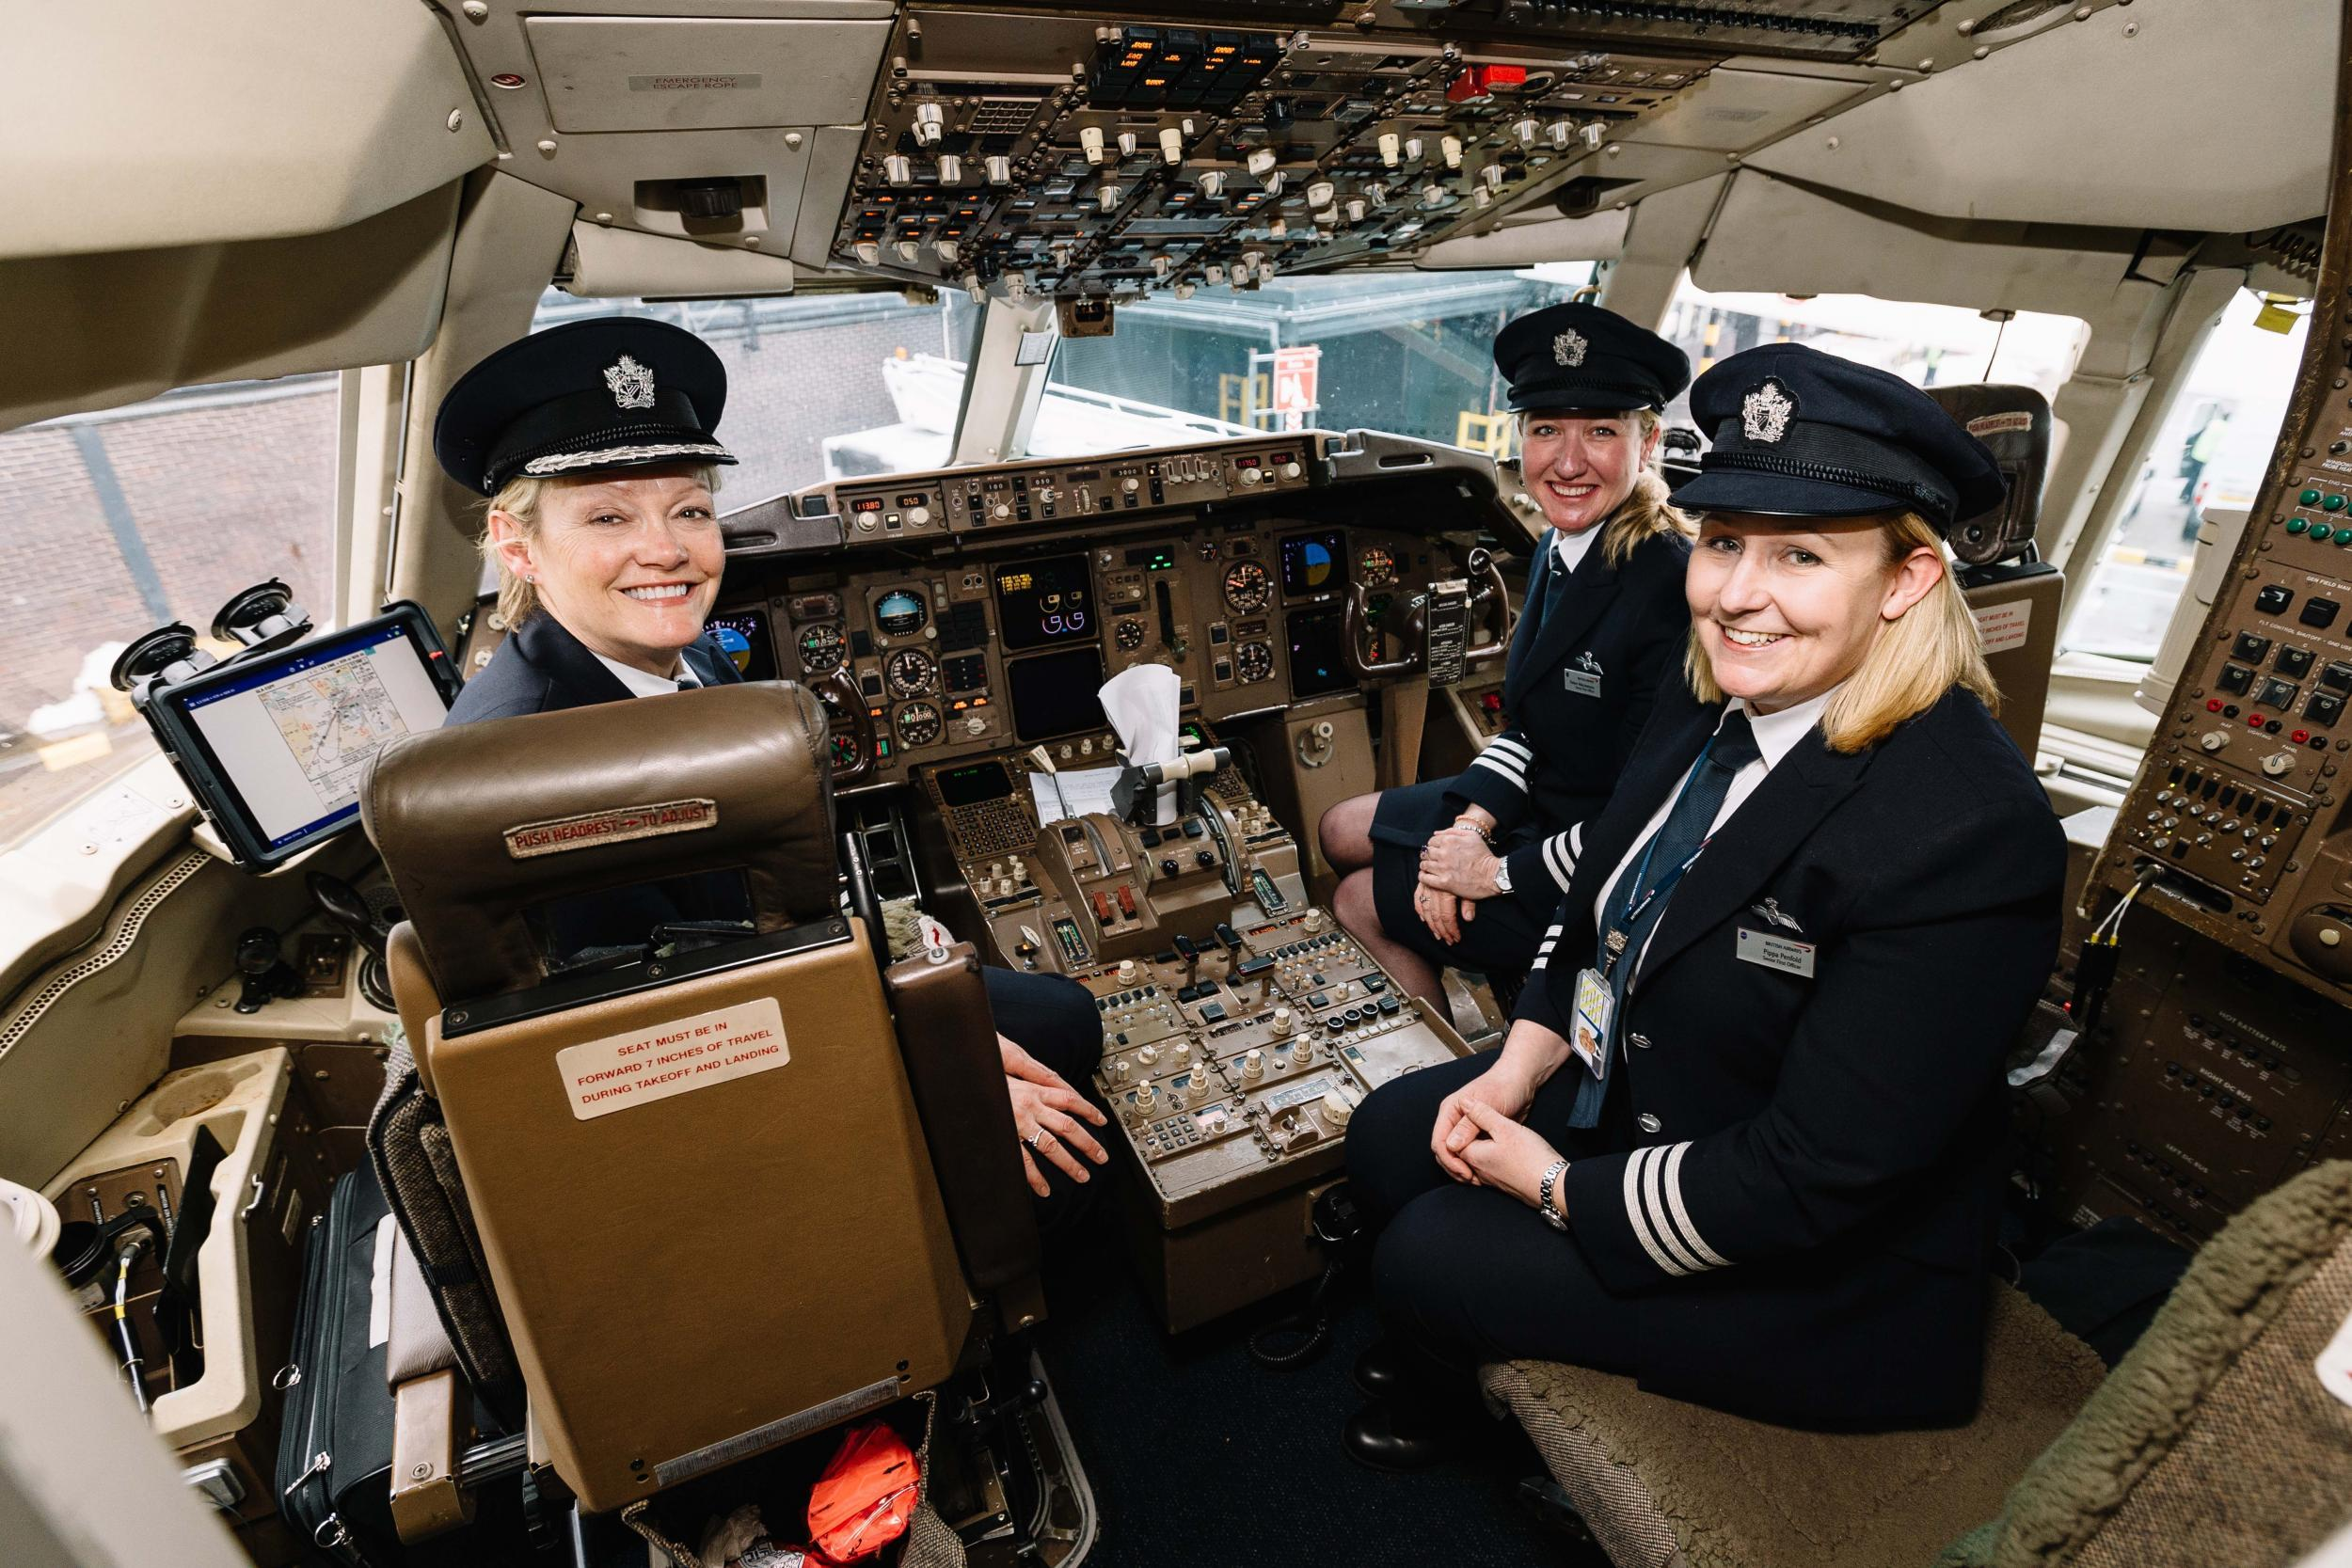 International Women's Day: Four female pilots discuss life in the flightdeck